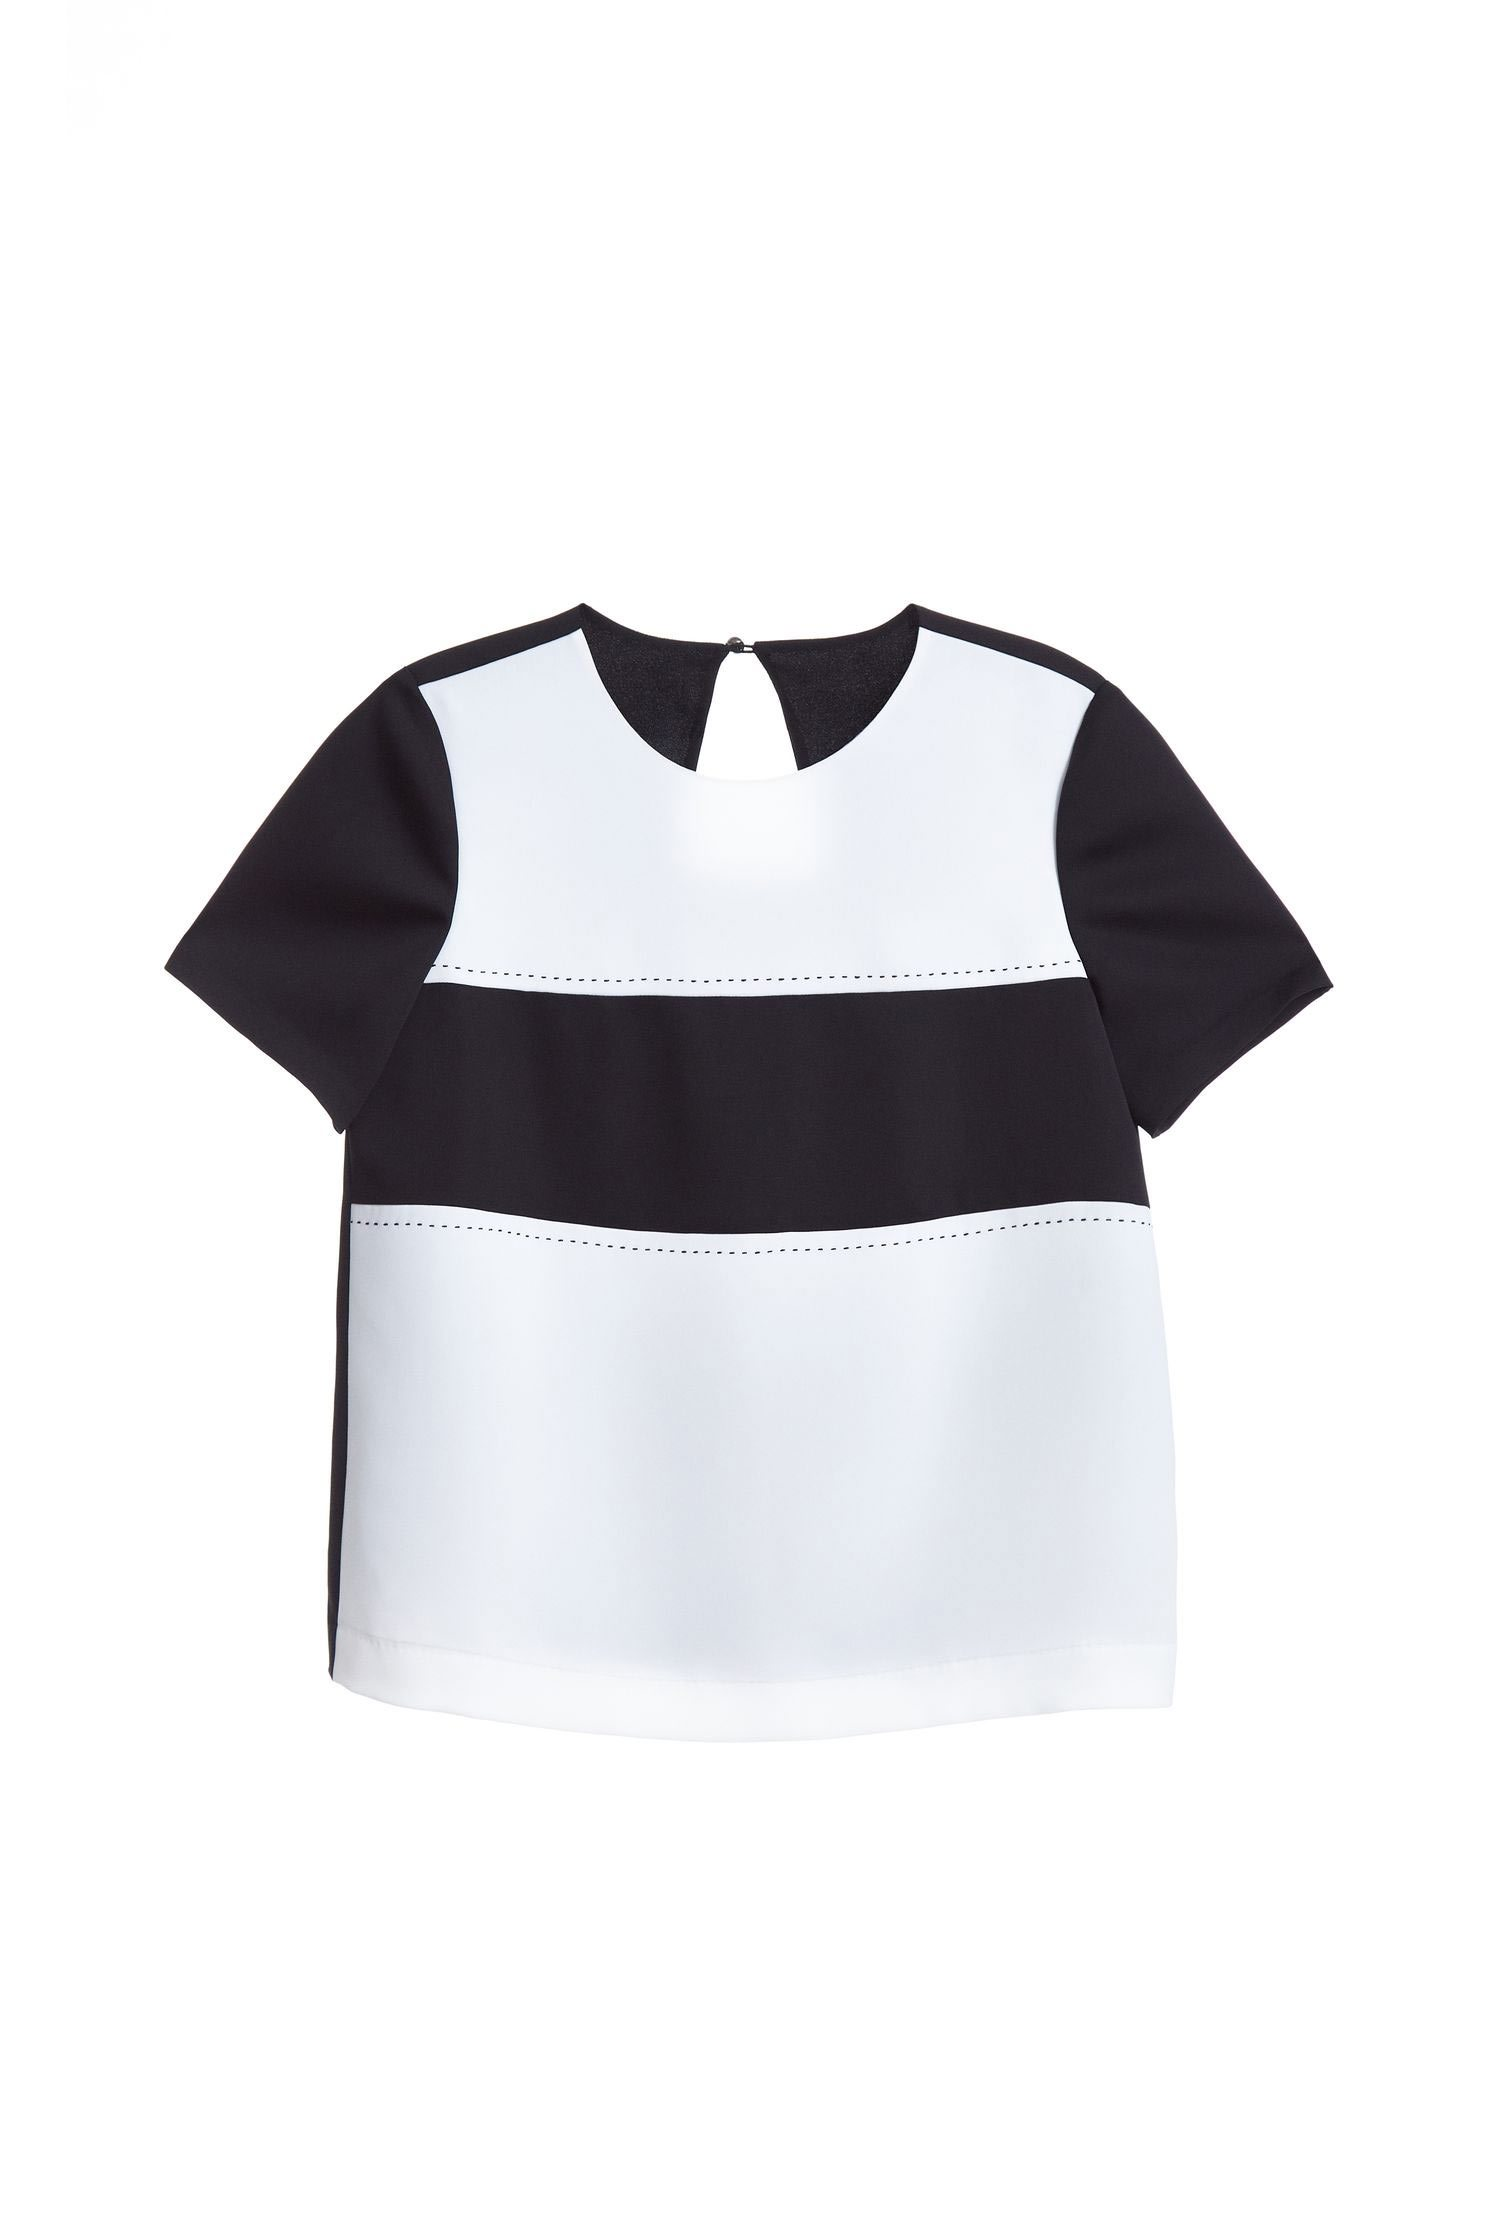 Stitching classic short-sleeved top